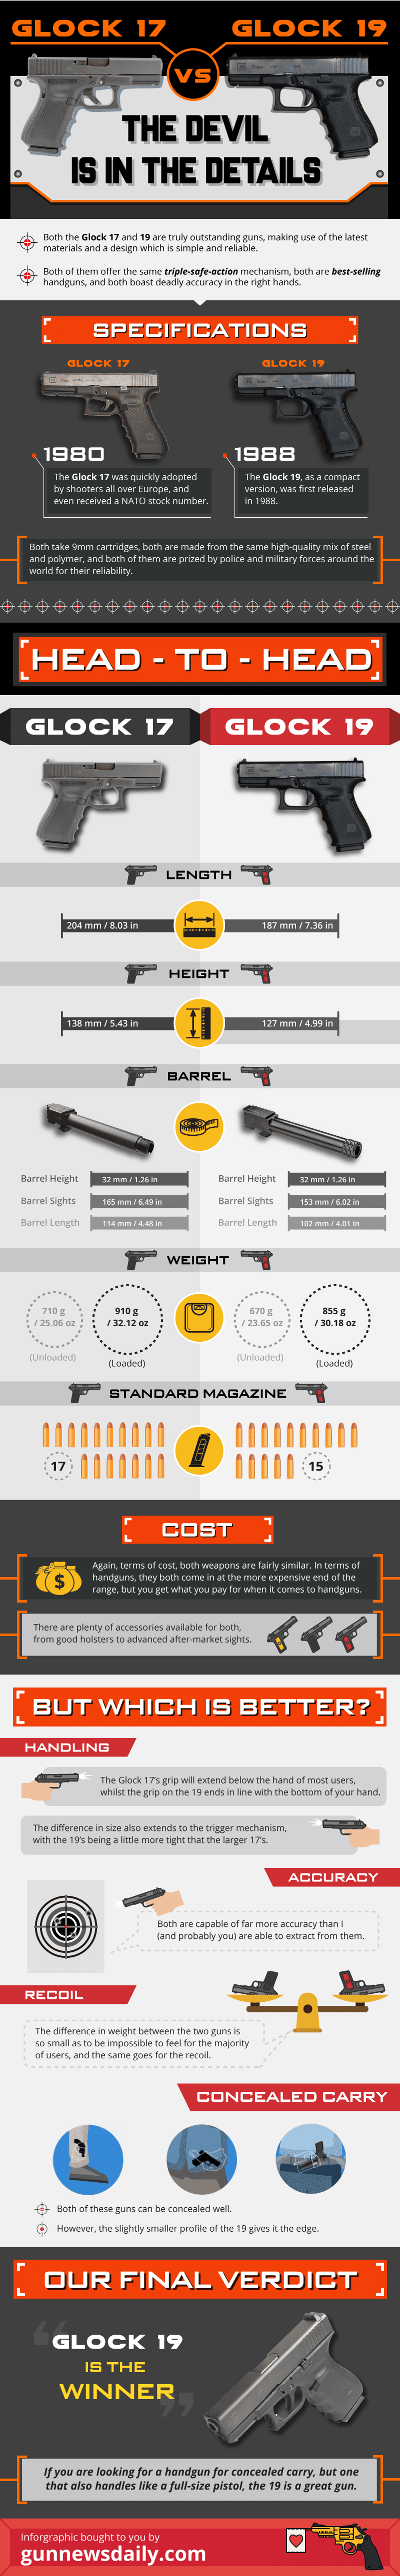 epic debate of the glock 19 versus glock 17 - compared side by side in an infographic